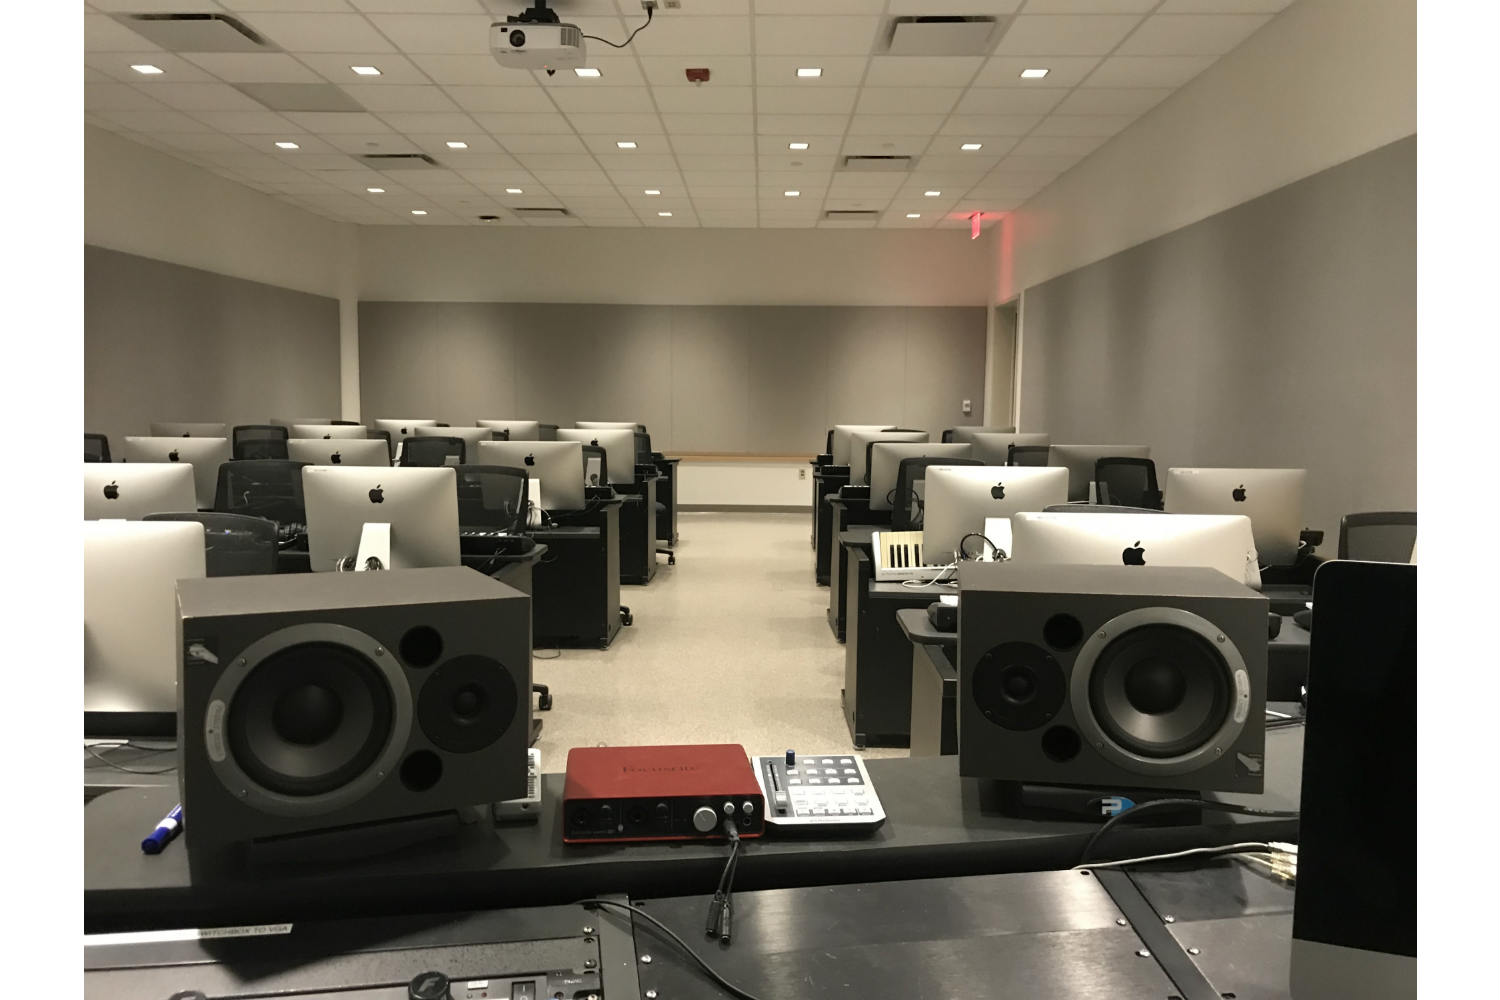 Drexel University in Philadelphia, PA is one of America's 15 largest universities. Their brand-new recording facilities, designed by the WSDG team, expands their music and recording program. MIDI Lab professor point of view